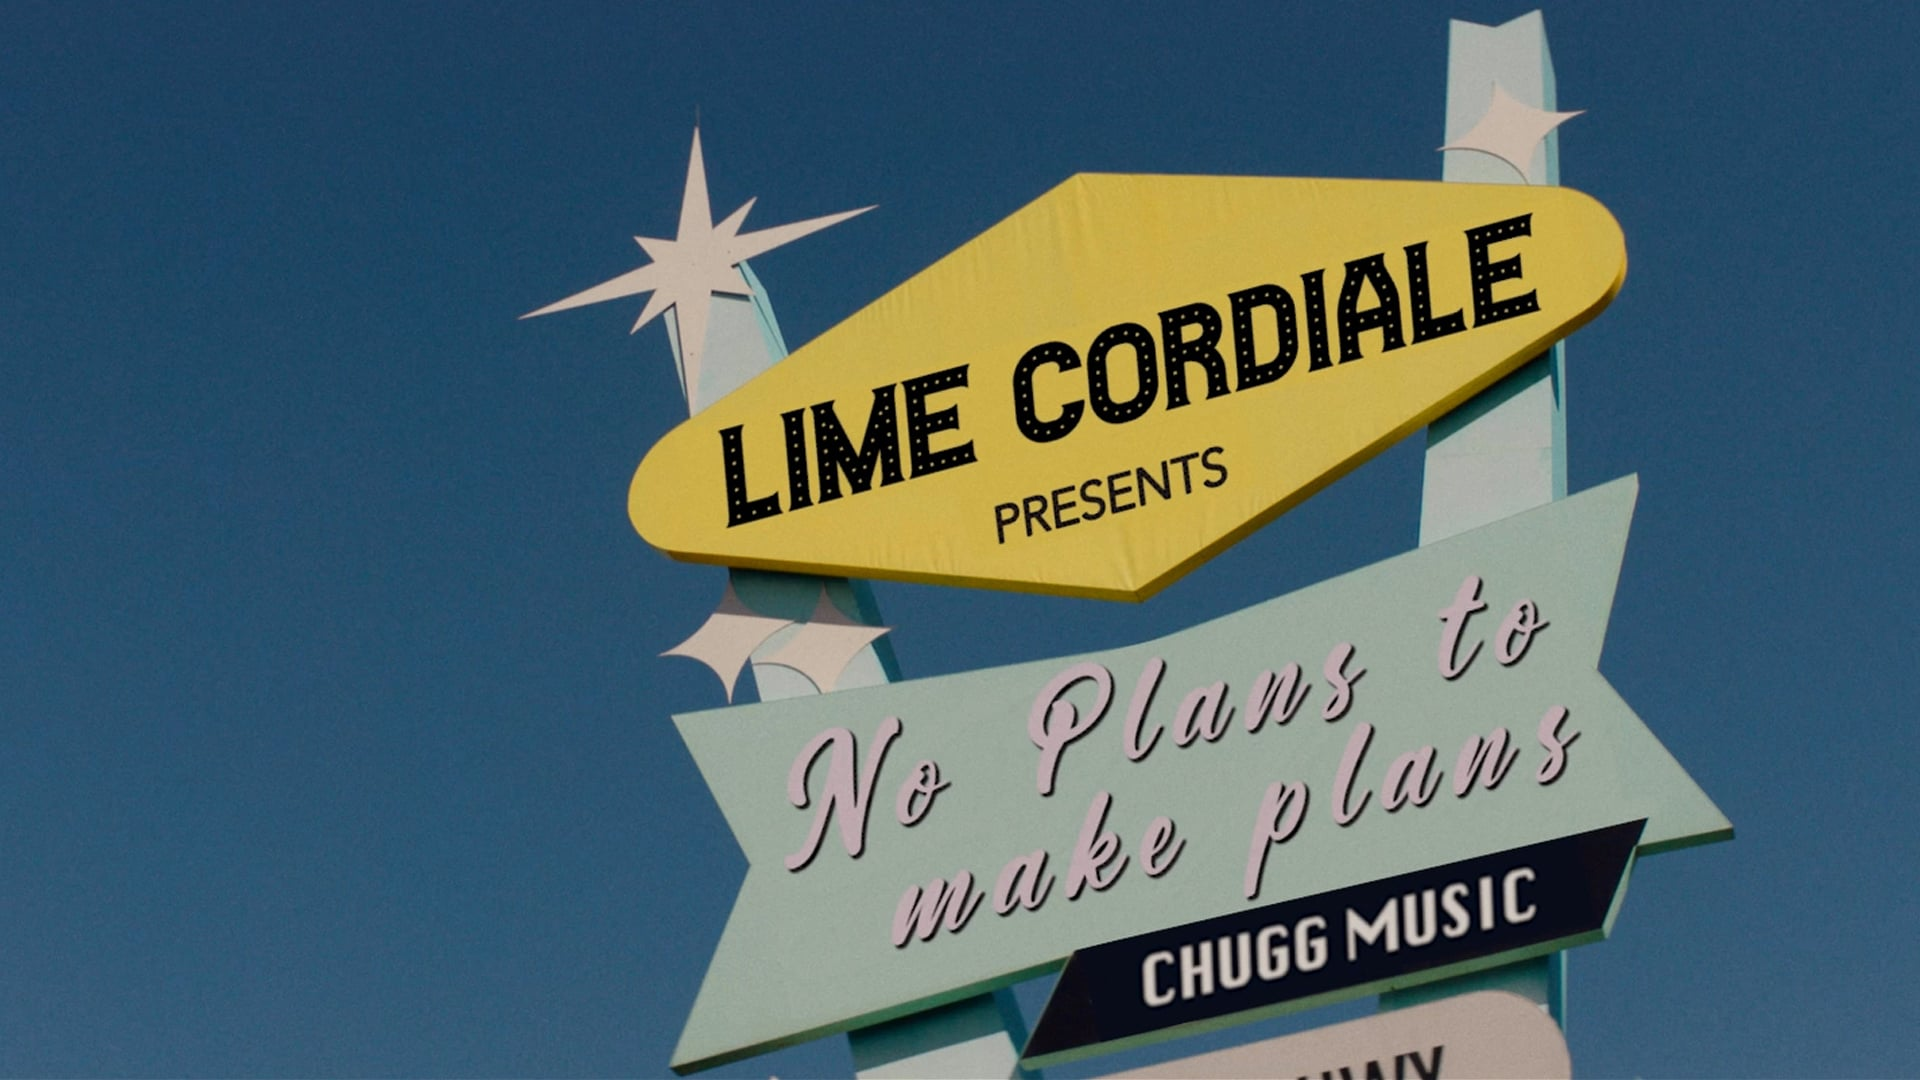 Lime Cordiale - No plans to make plans